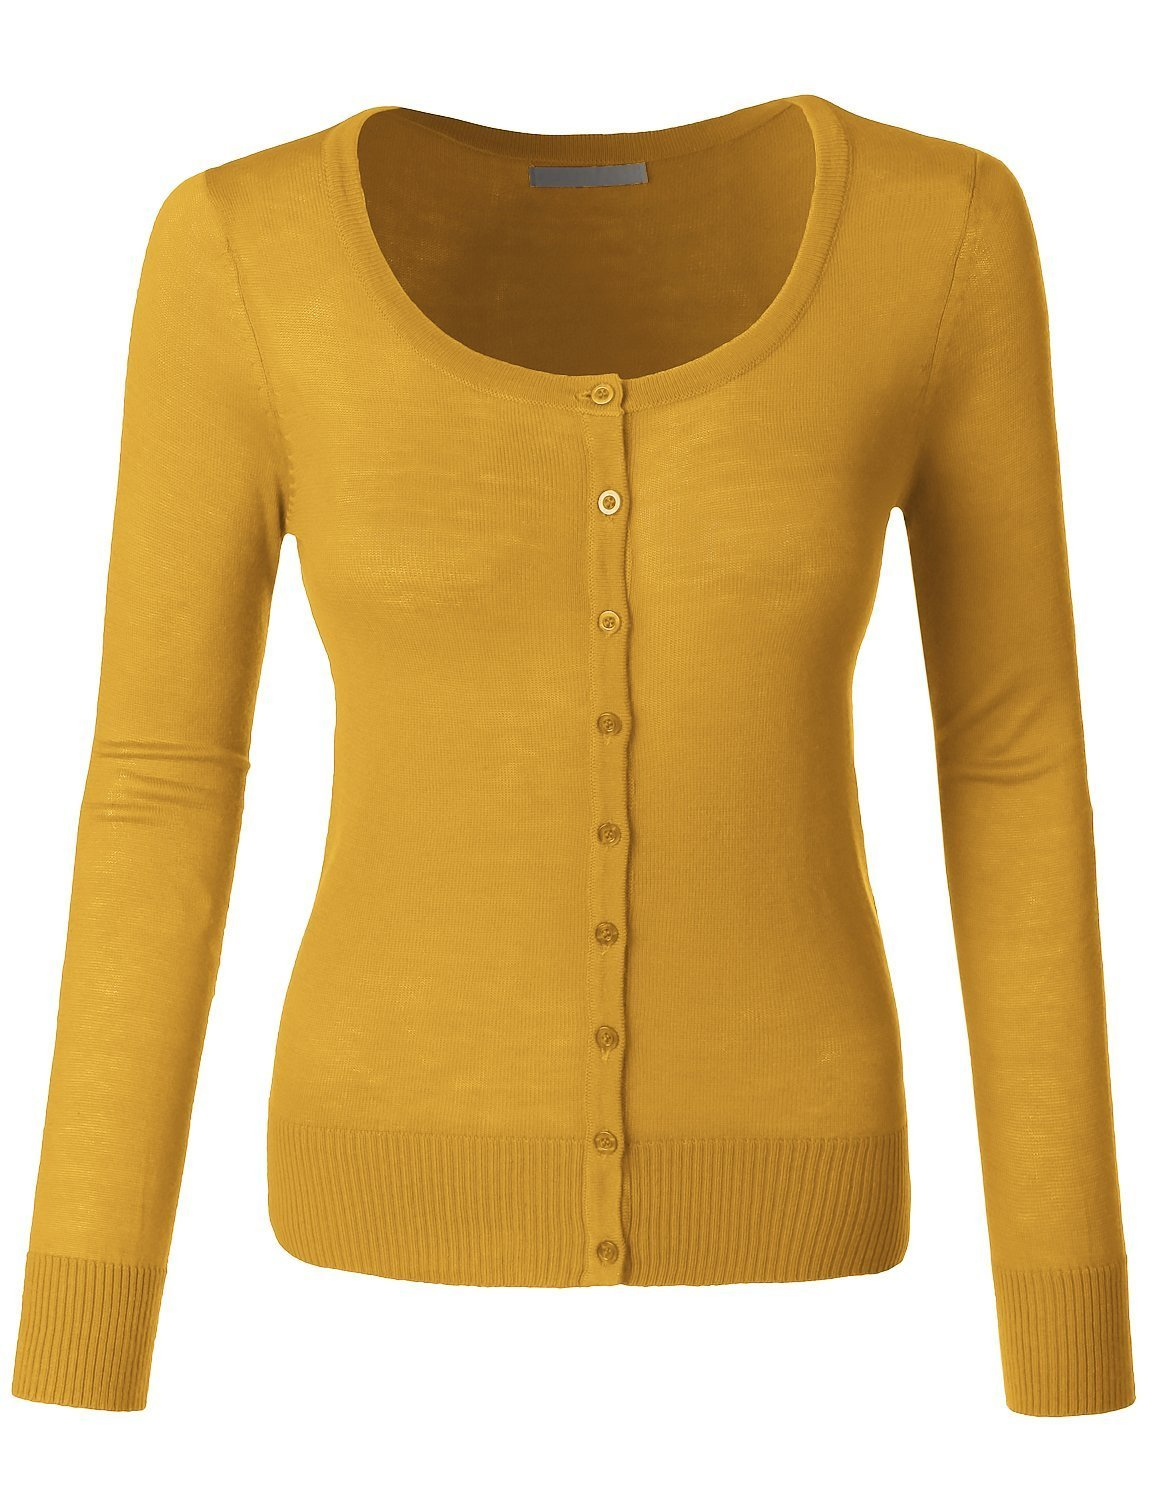 LE3NO Womens Lightweight Round Neck Fine Knit Cardigan Sweater With Stretch